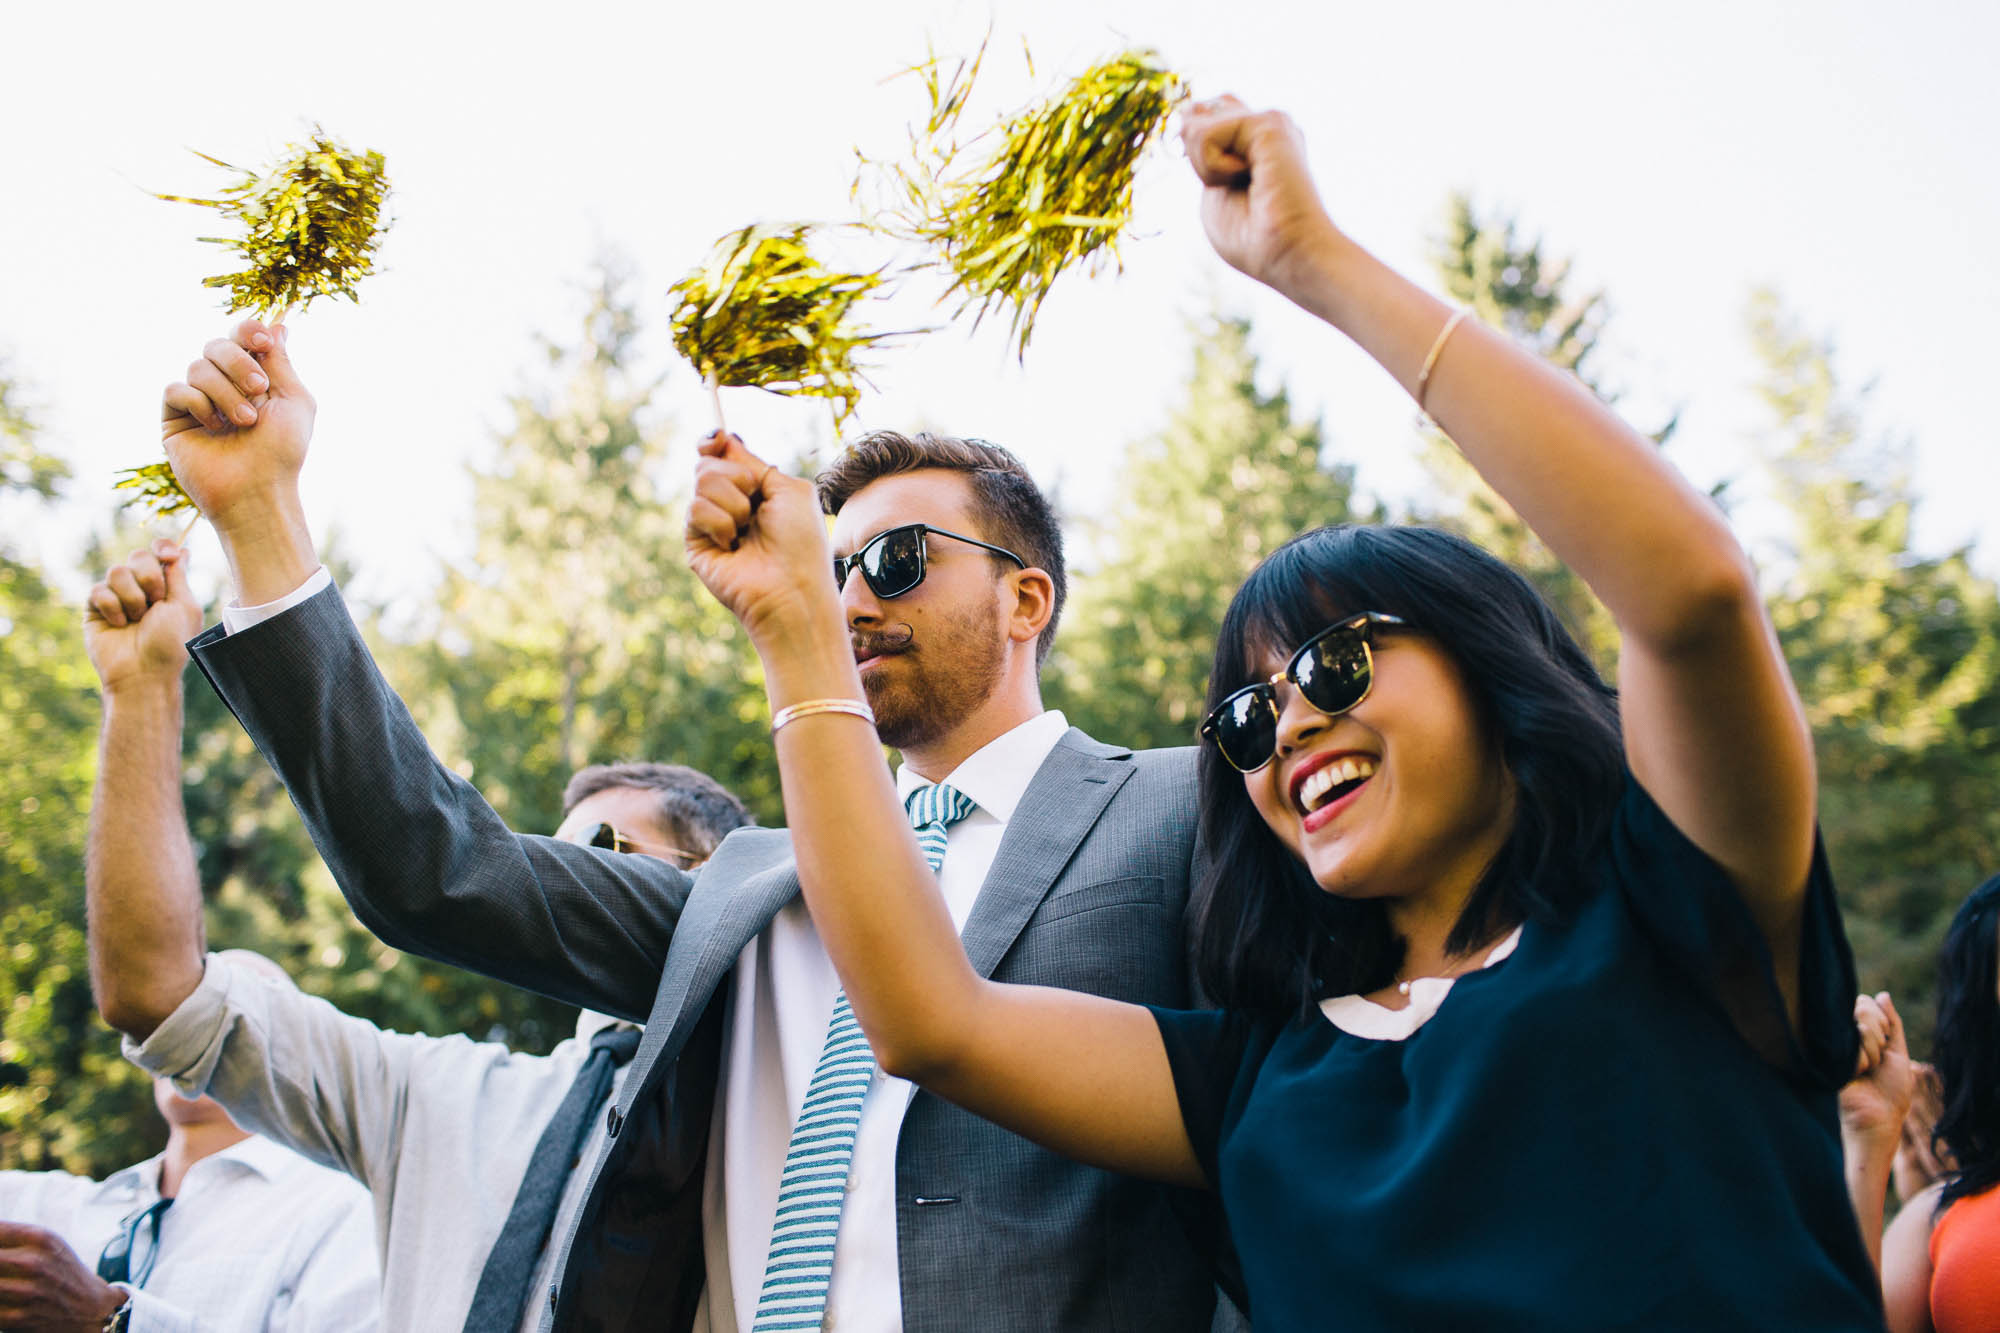 20140920_wedding_best_vancouver_rustic_photographer_photography_squamish__142.jpg